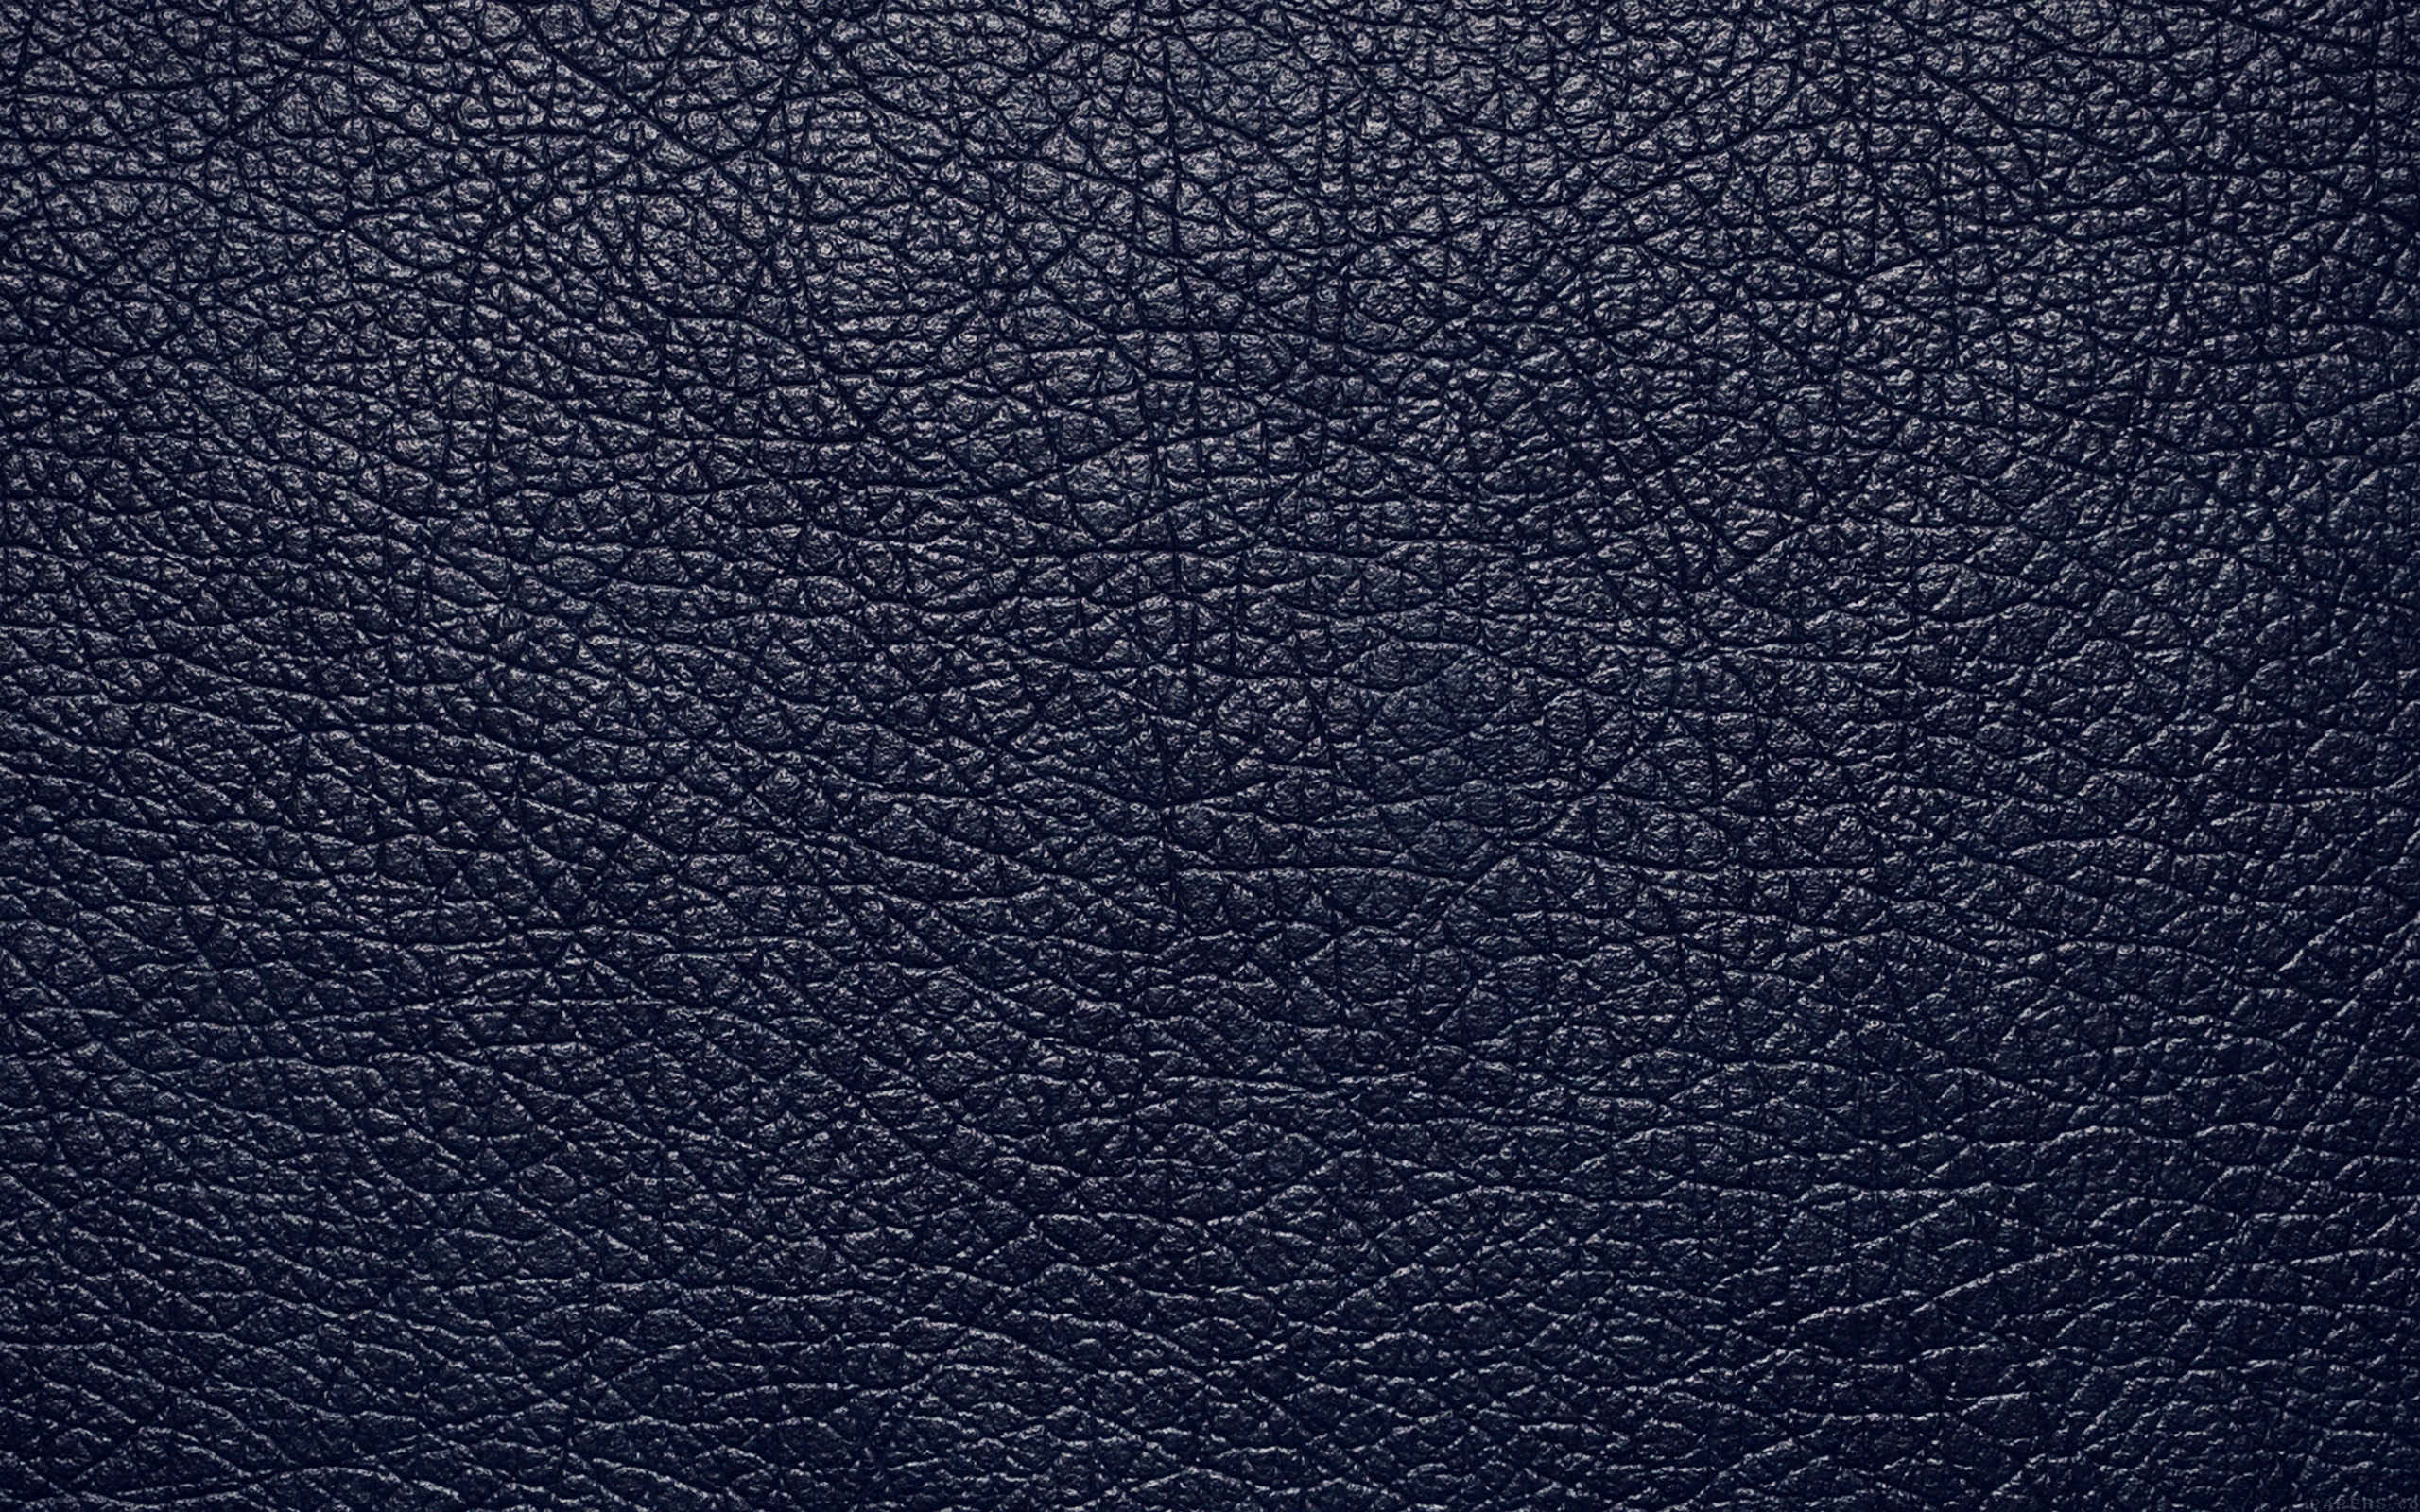 Vi30 Texture Skin Blue Dark Leather Pattern Papers Co